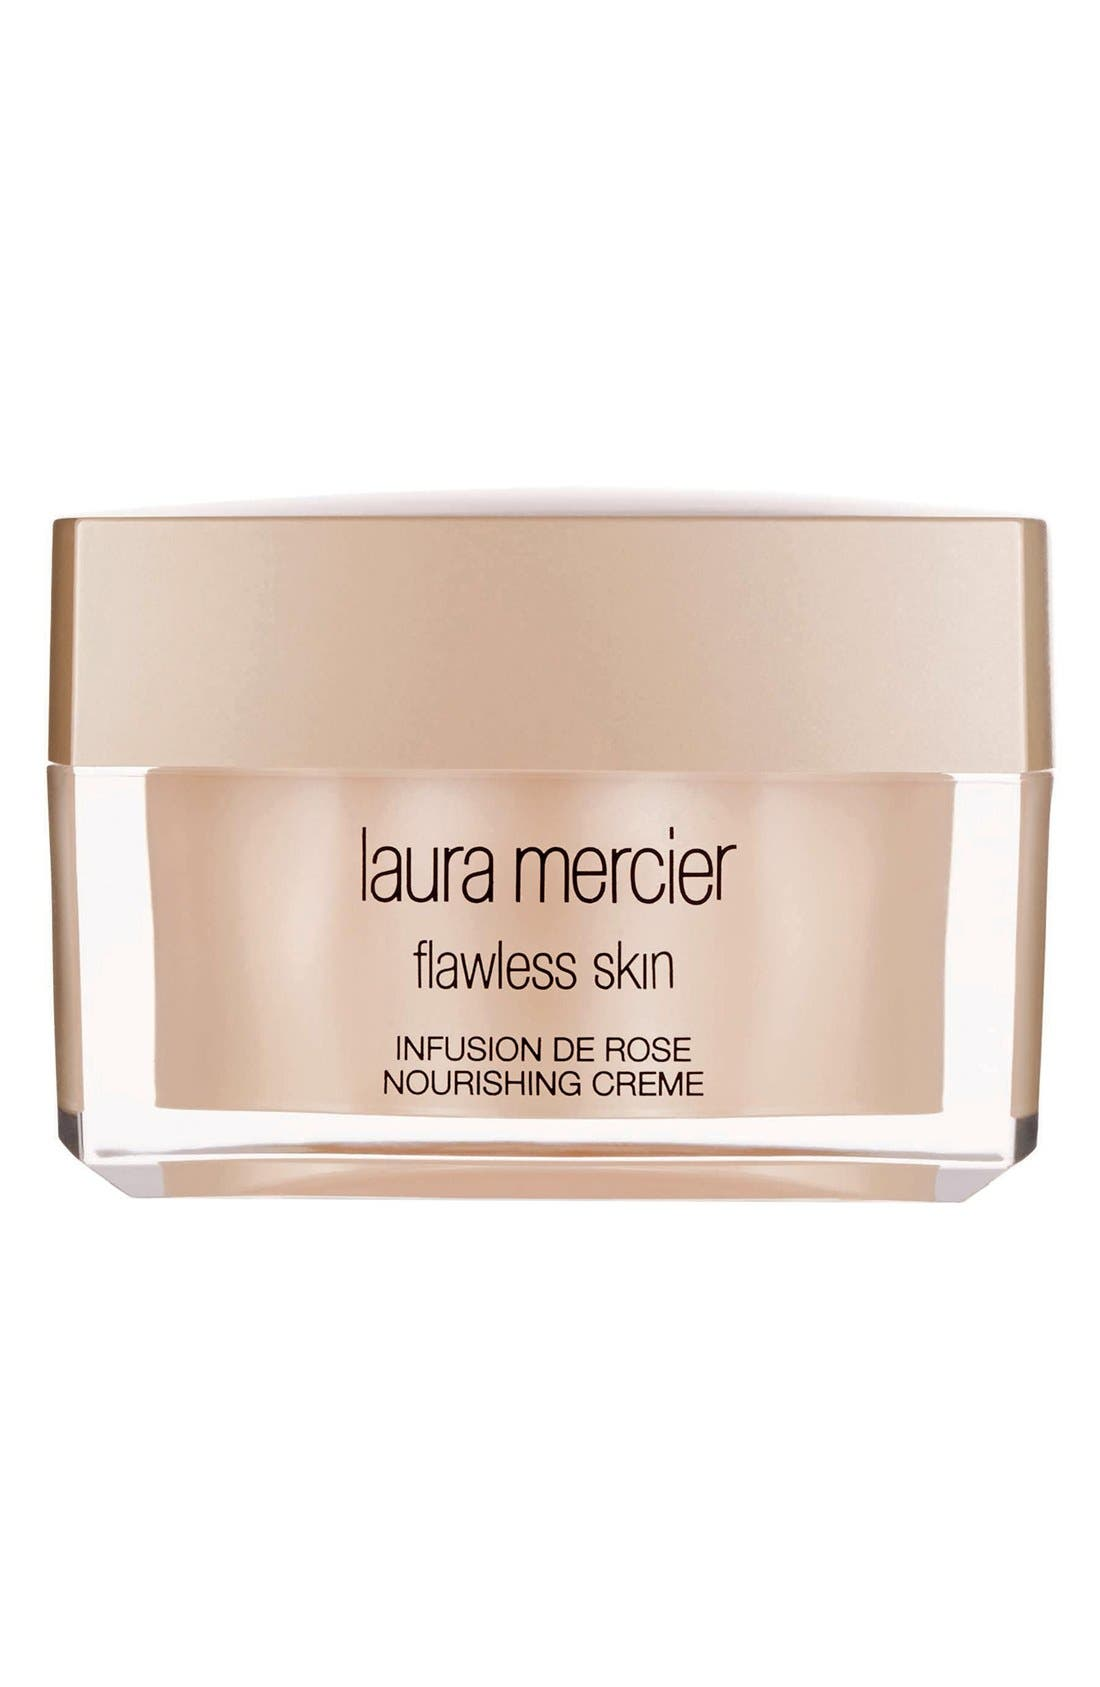 Laura Mercier 'Flawless Skin' Infusion de Rose Nourishing Crème